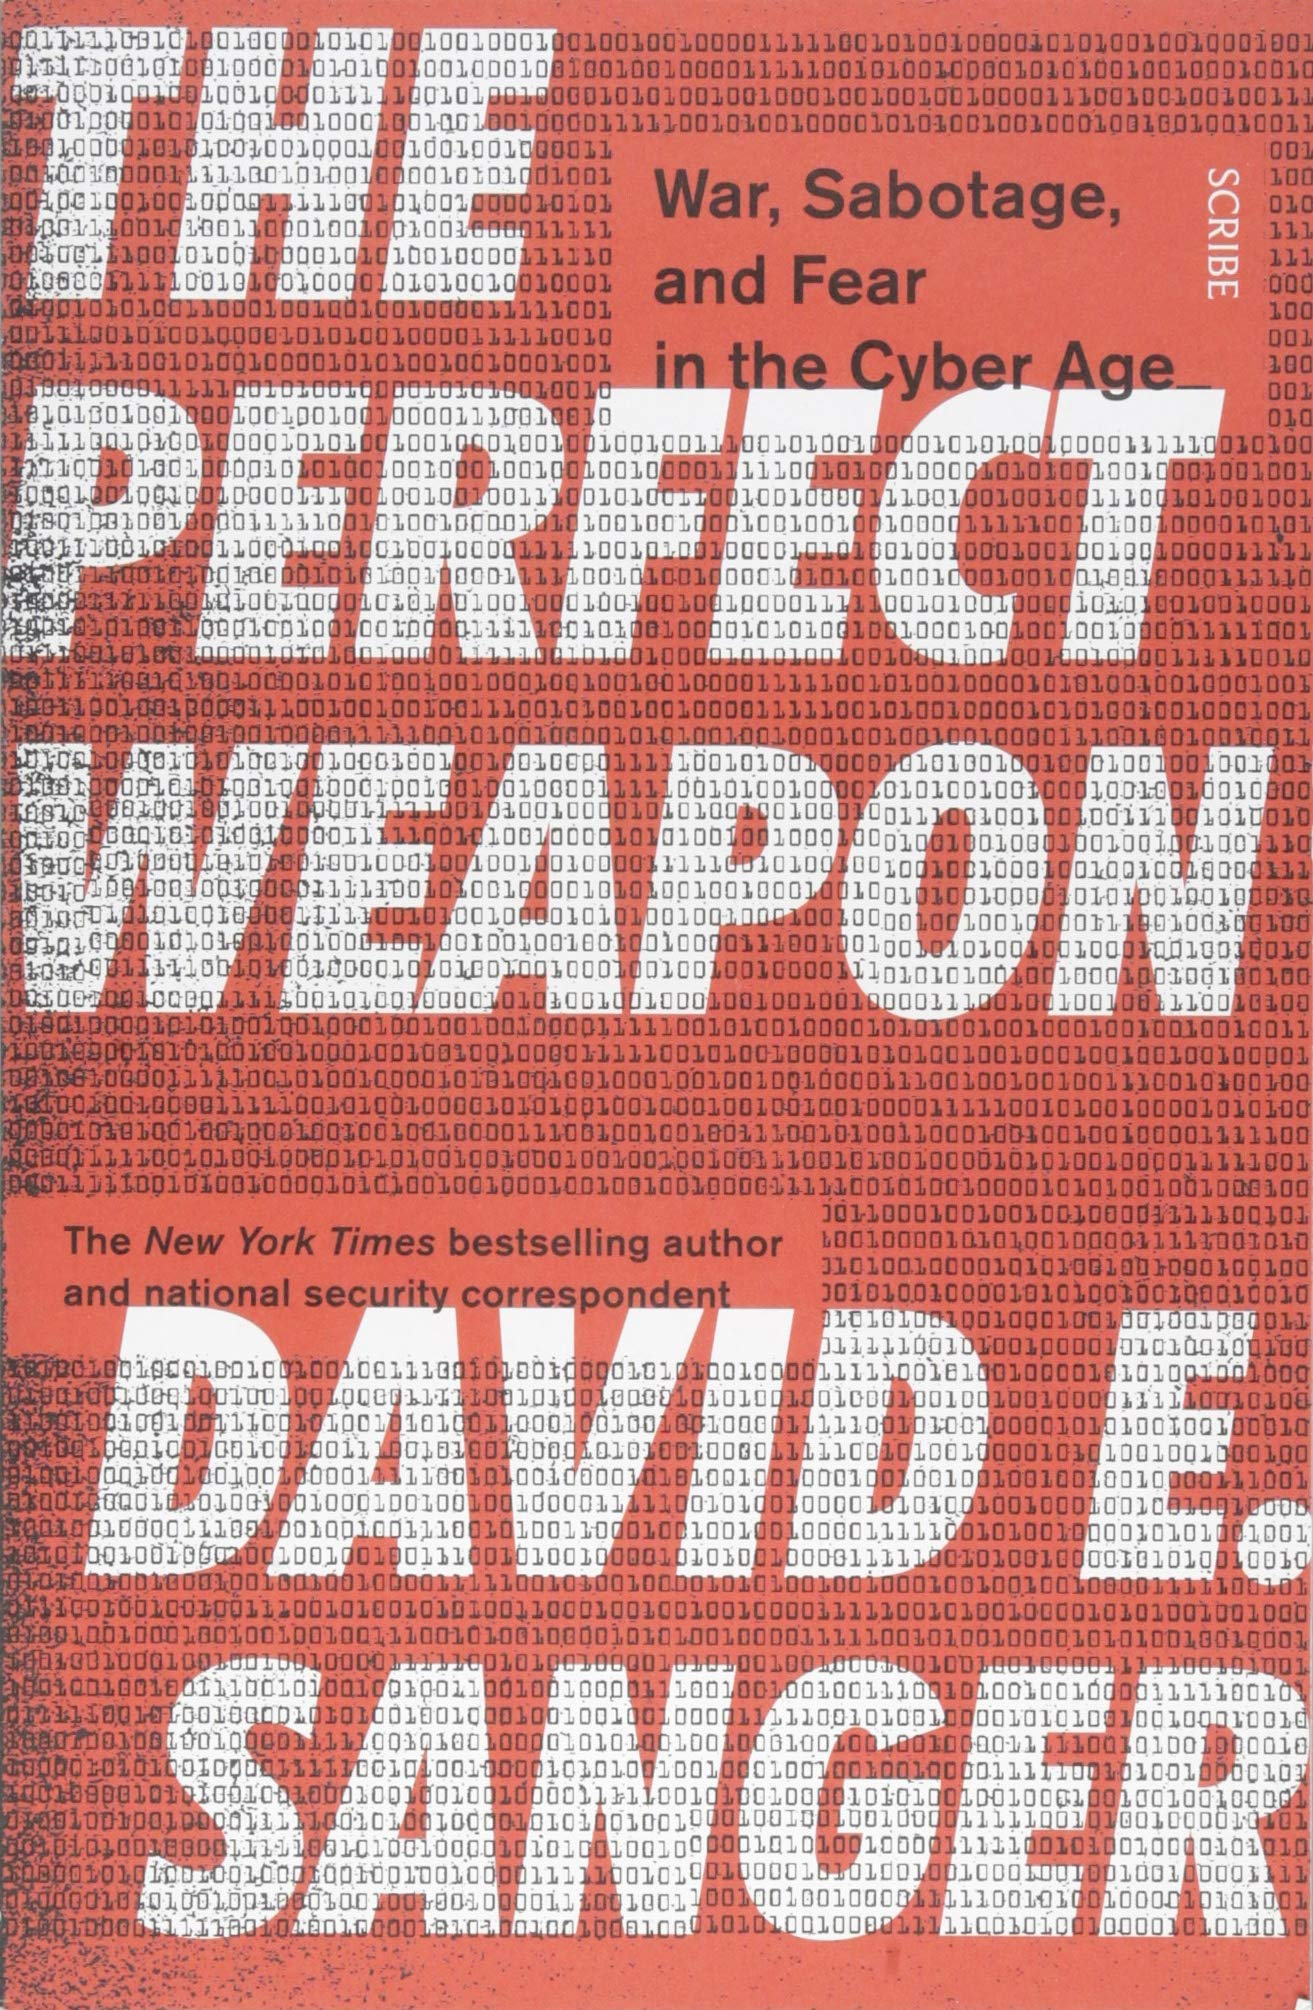 Image OfThe Perfect Weapon: War, Sabotage, And Fear In The Cyber Age_